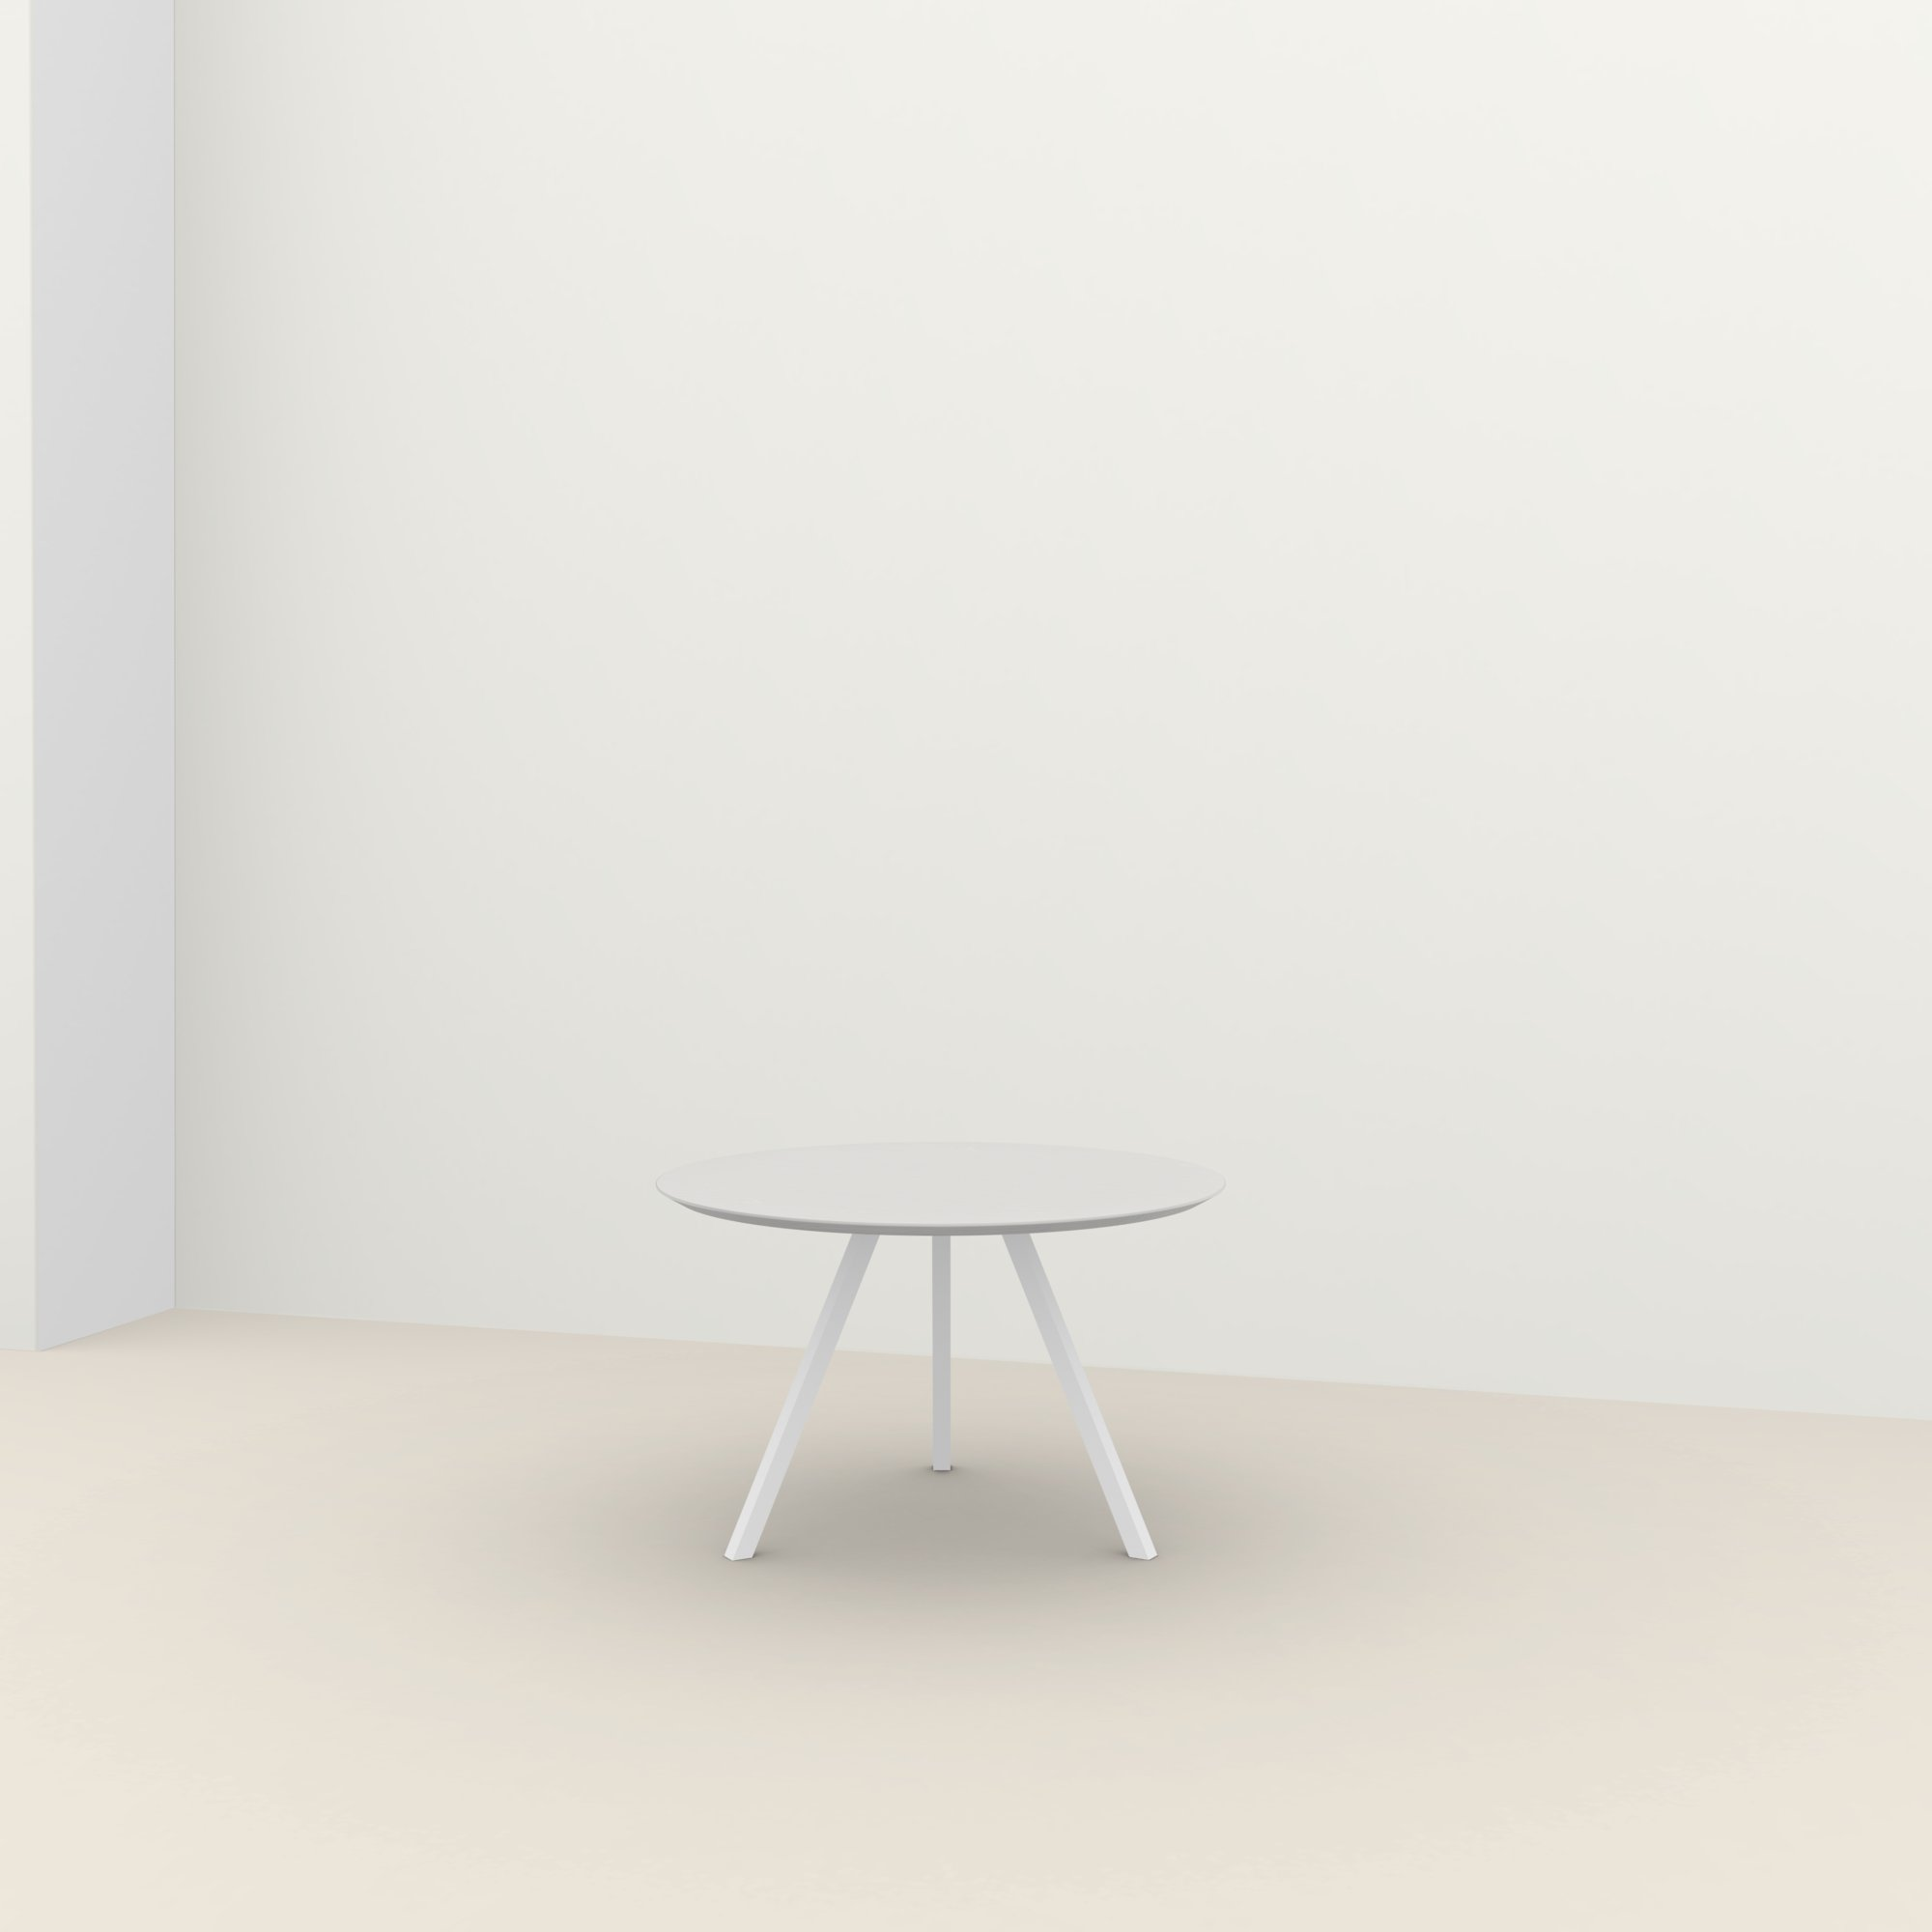 Ronde design tafel op maat | New Classic Tripod Steel white powdercoating | Oak white lacquer | Studio HENK |